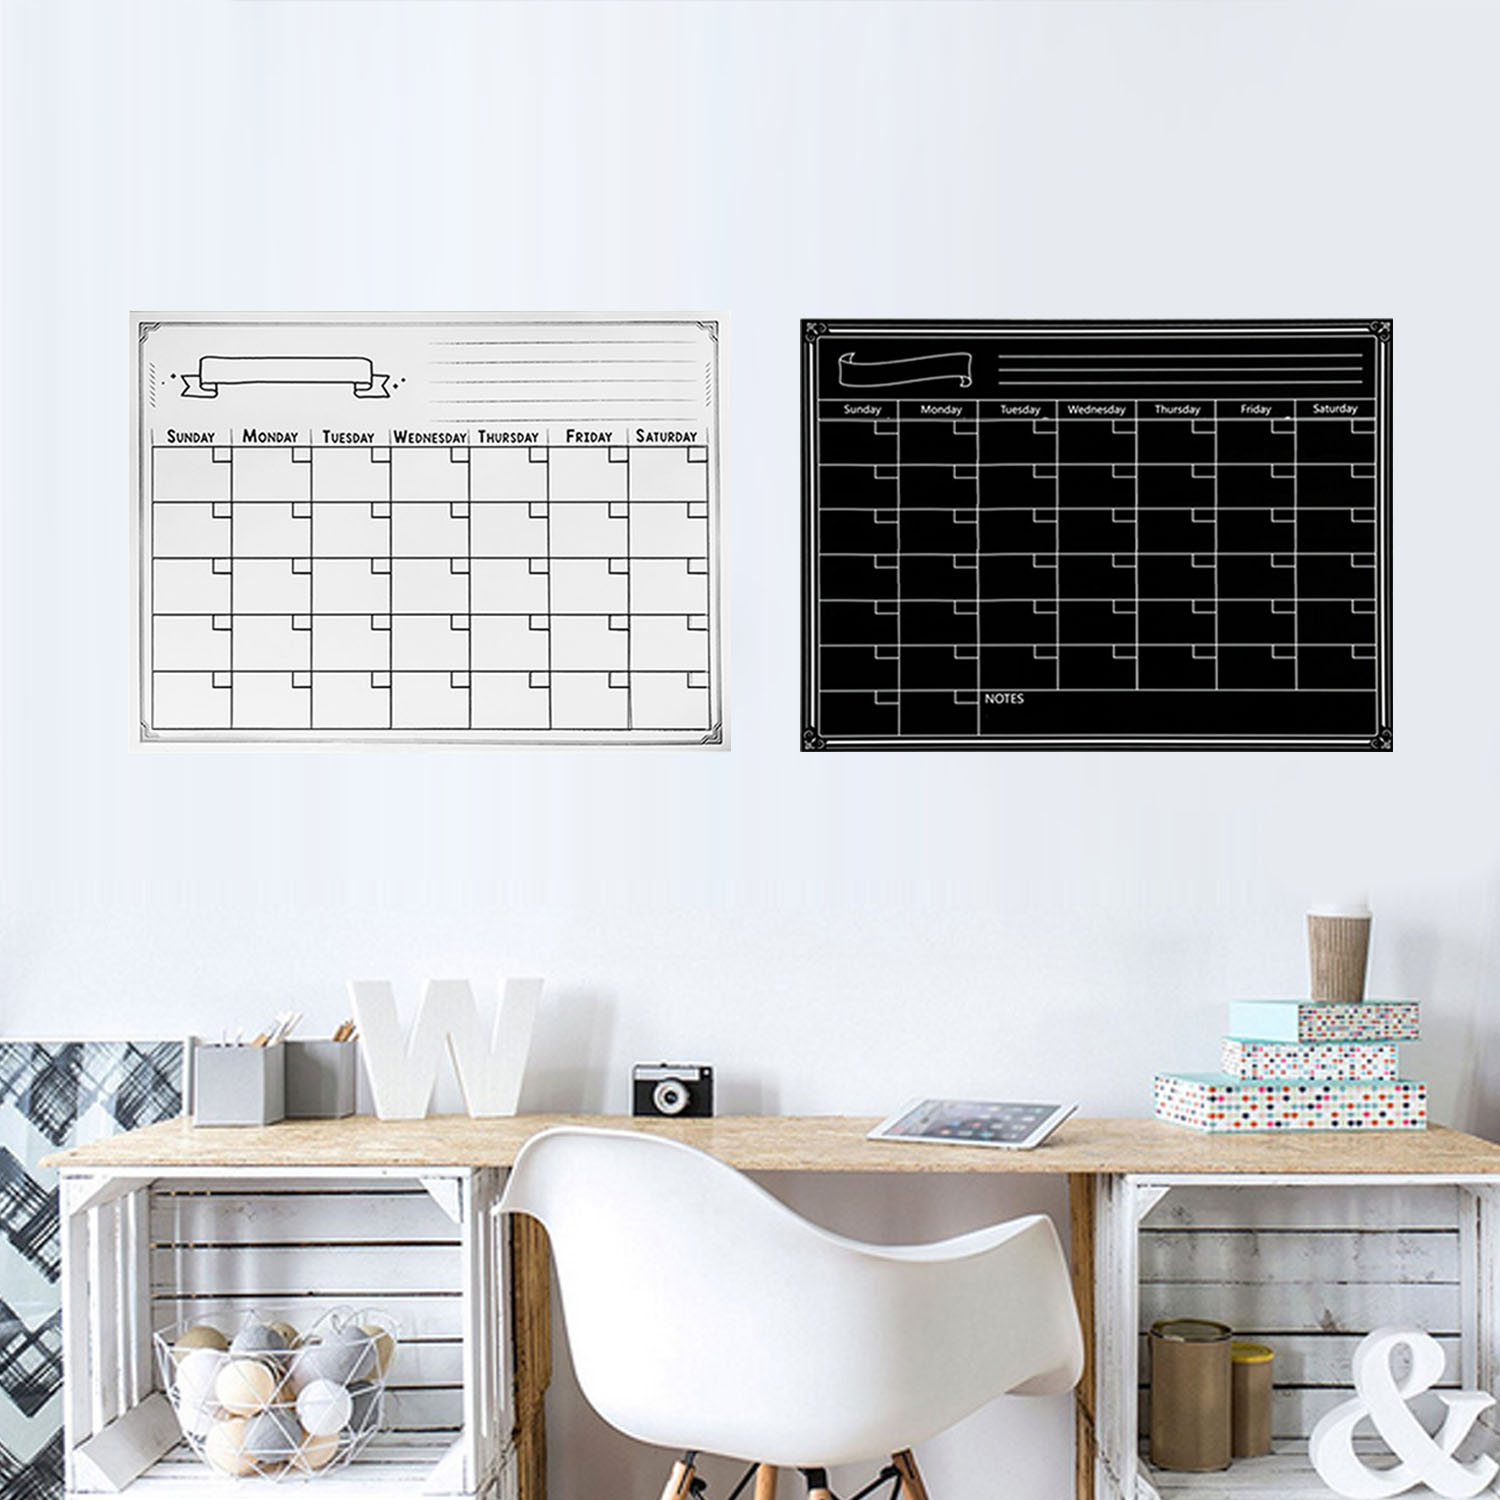 40x30cm Reusable Magnetic Dry Erase Calendar Weekly Monthly Planner Whiteboard Board For Refrigerator Home Kichen Office Fridge